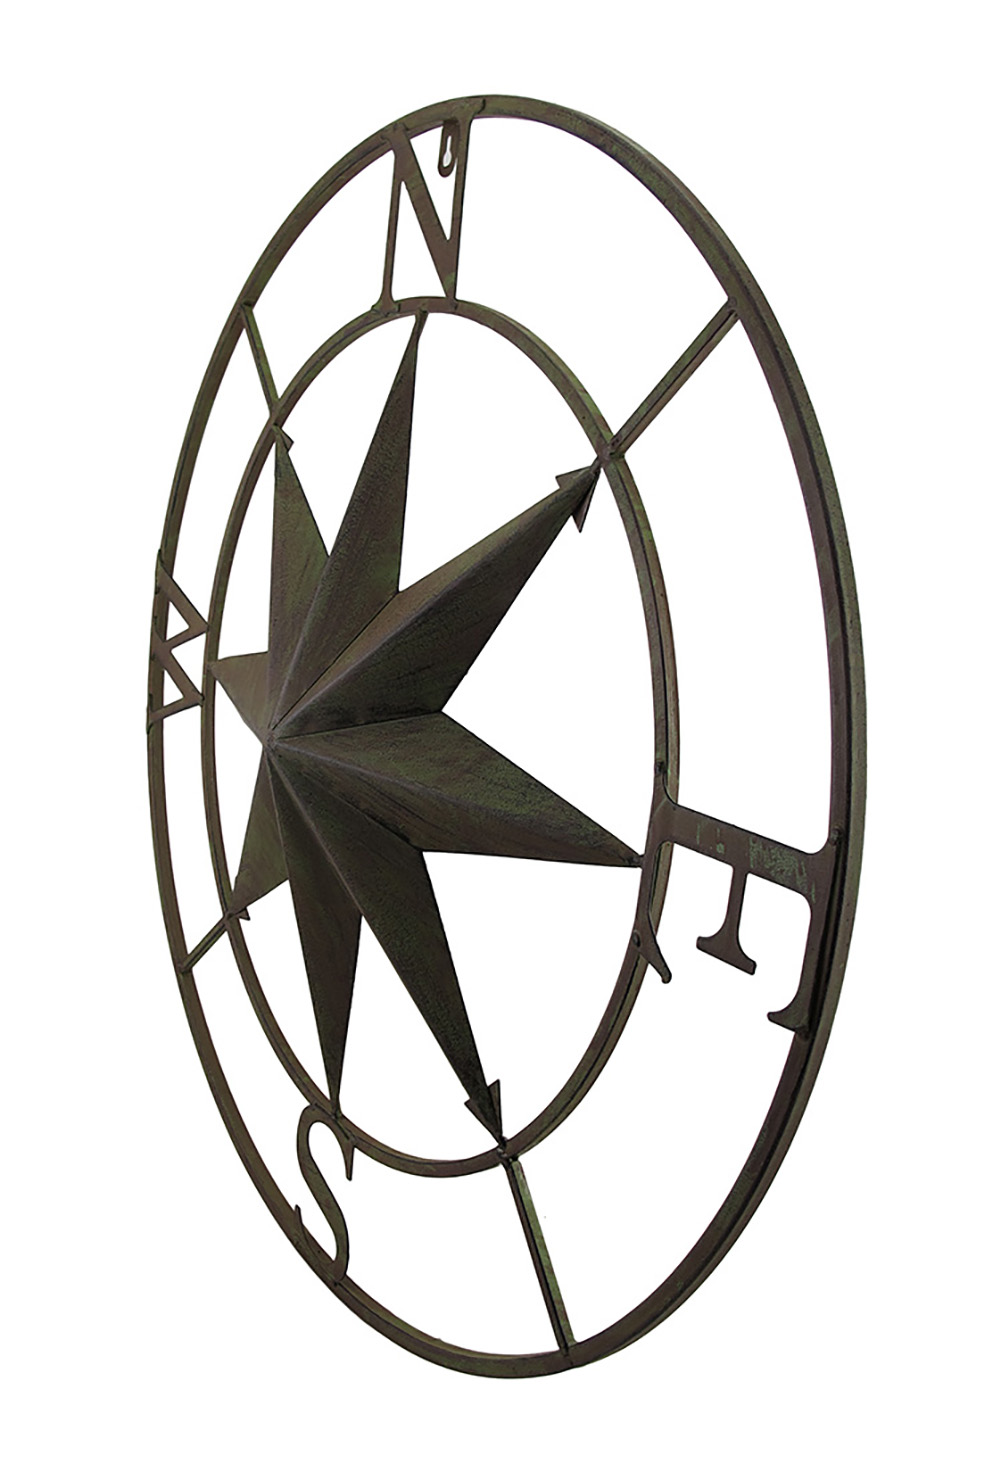 thumbnail 6 - Zeckos Distressed Finish 26 Inch Diameter Compass Rose Nautical Wall Hanging